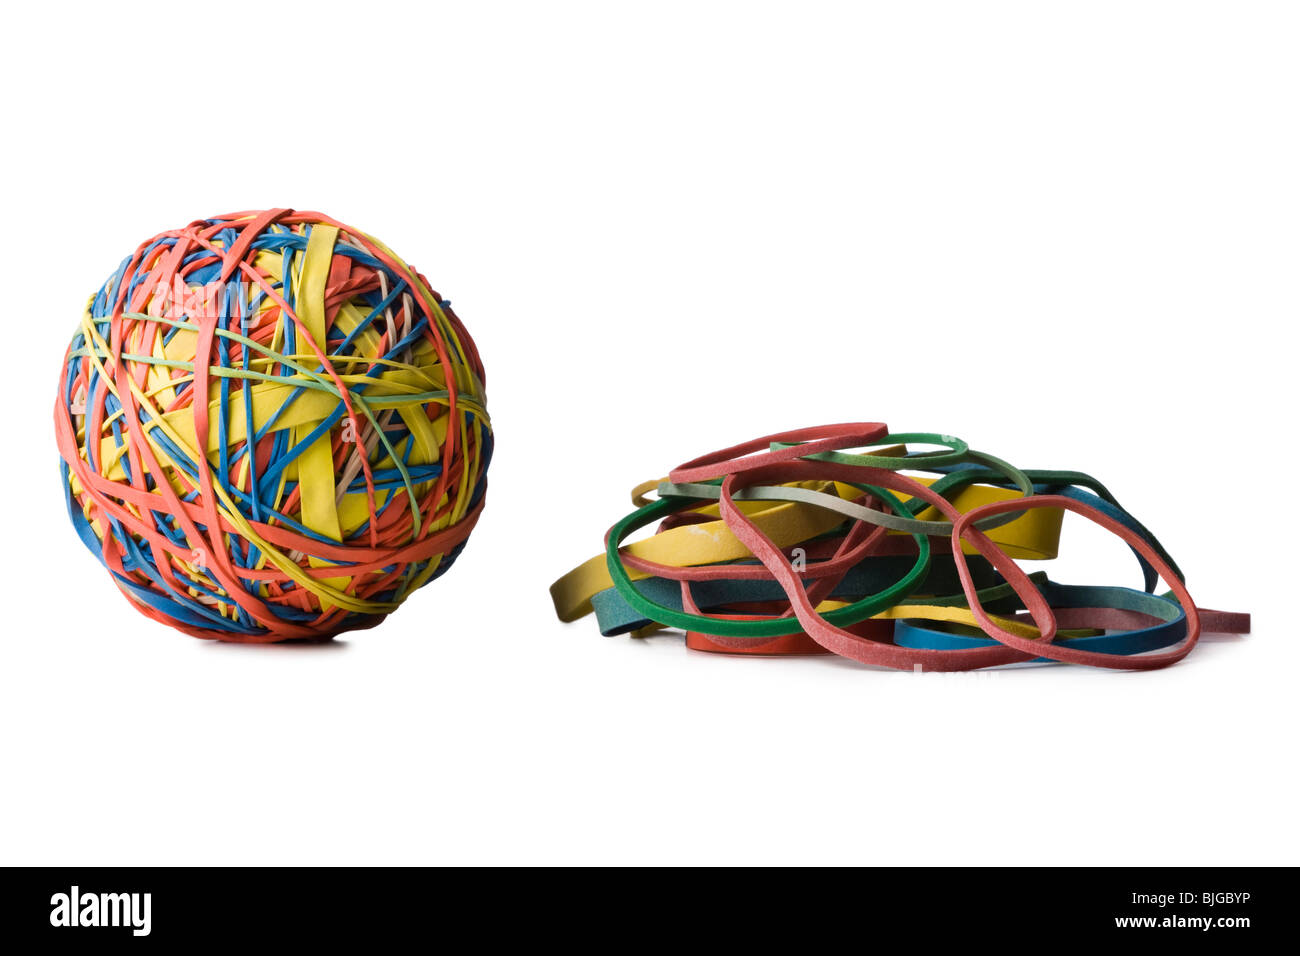 rubber band ball next to a pile of rubber bands - Stock Image